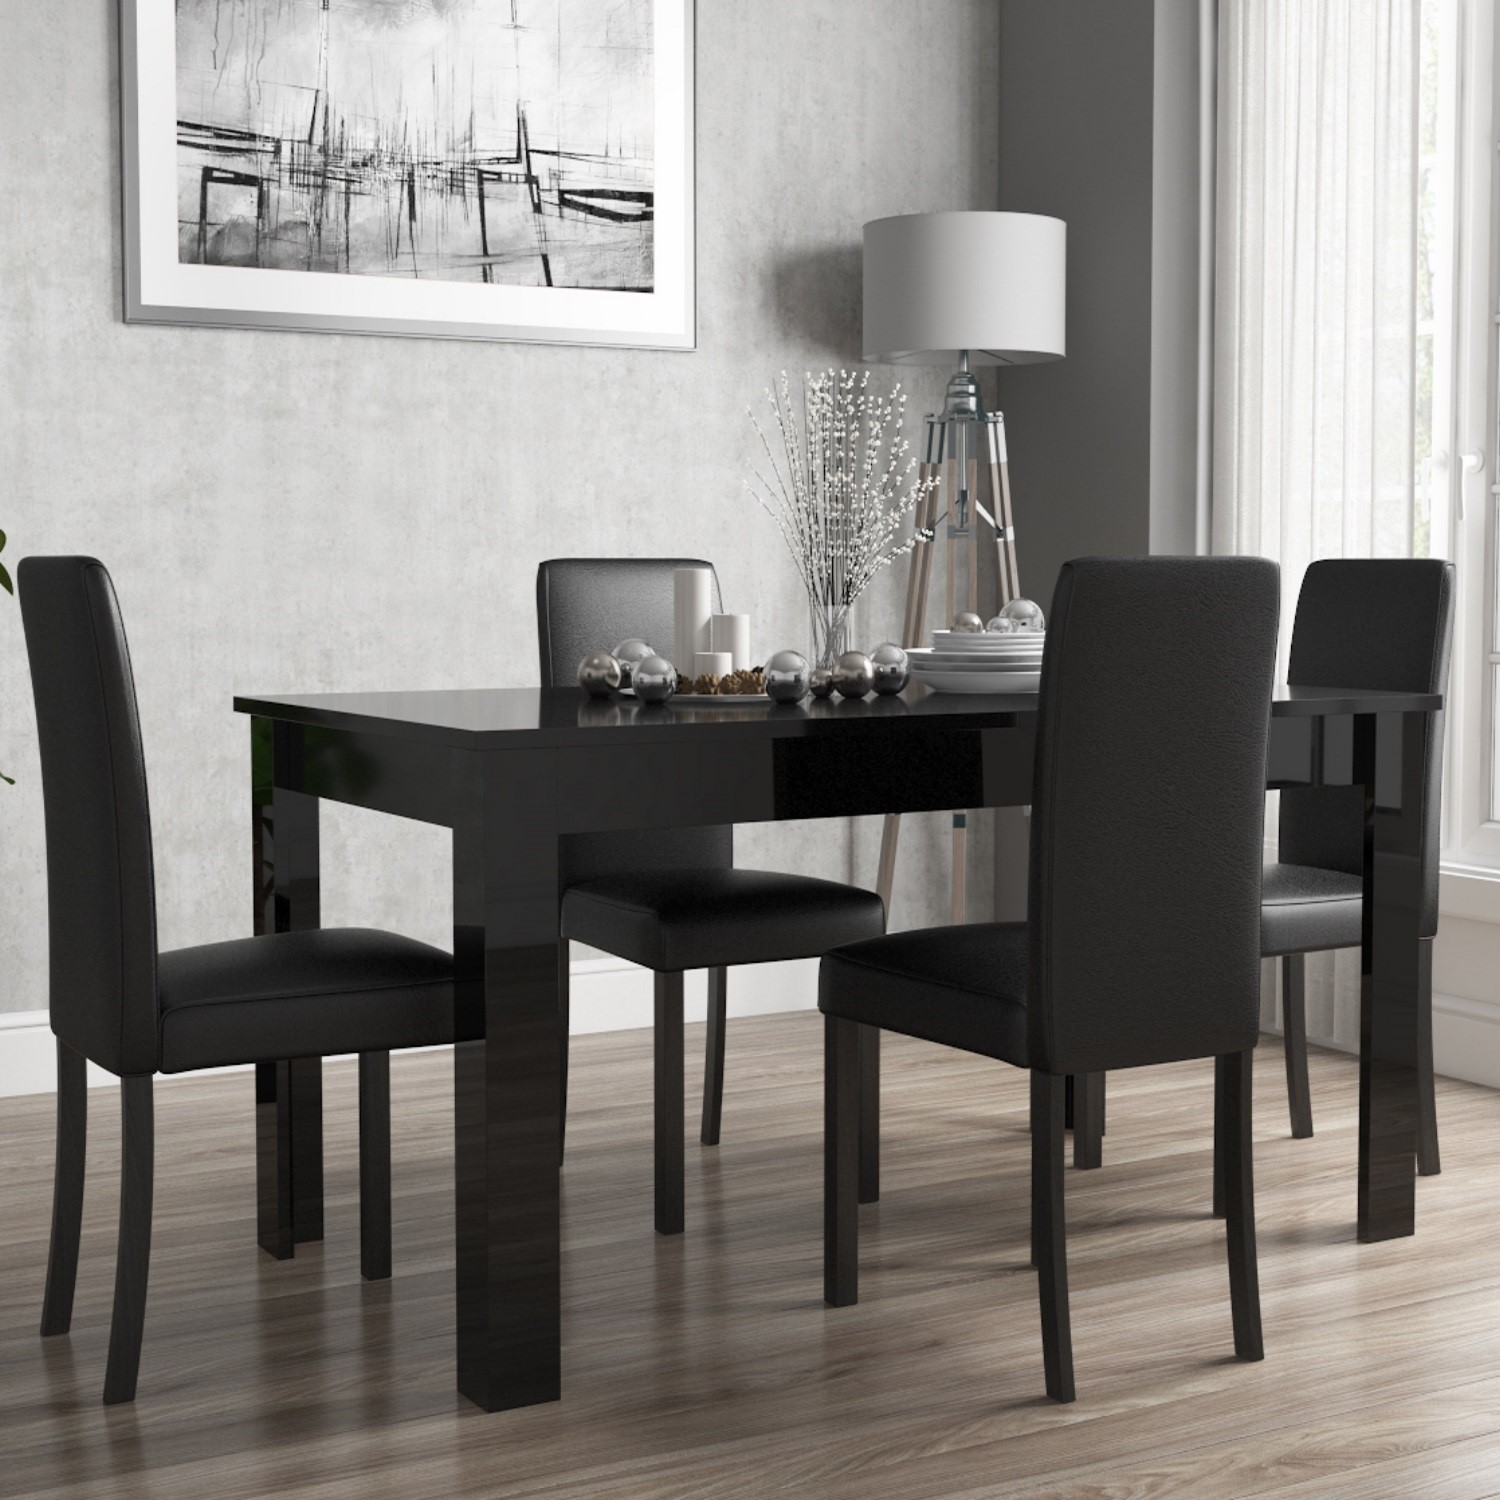 Black Gloss Extending Dining Table And 4 Black Faux Leather Chairs